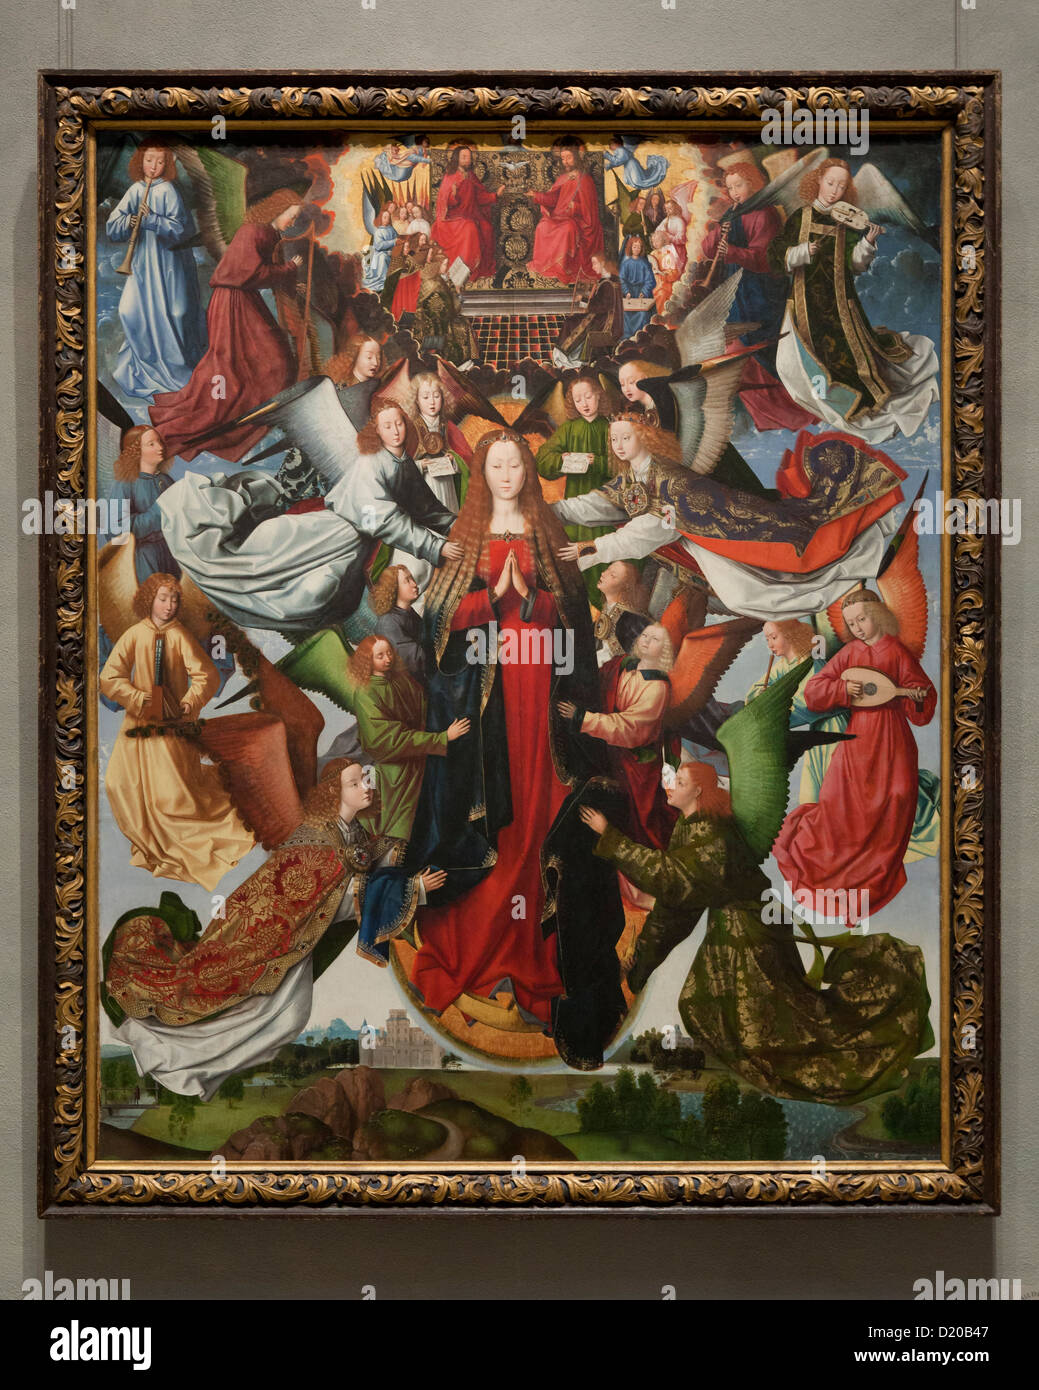 Mary, Queen of Heaven - Master of the Saint Lucy Legend, 1485 - Smithsonian, National Gallery of Art - Washington, - Stock Image